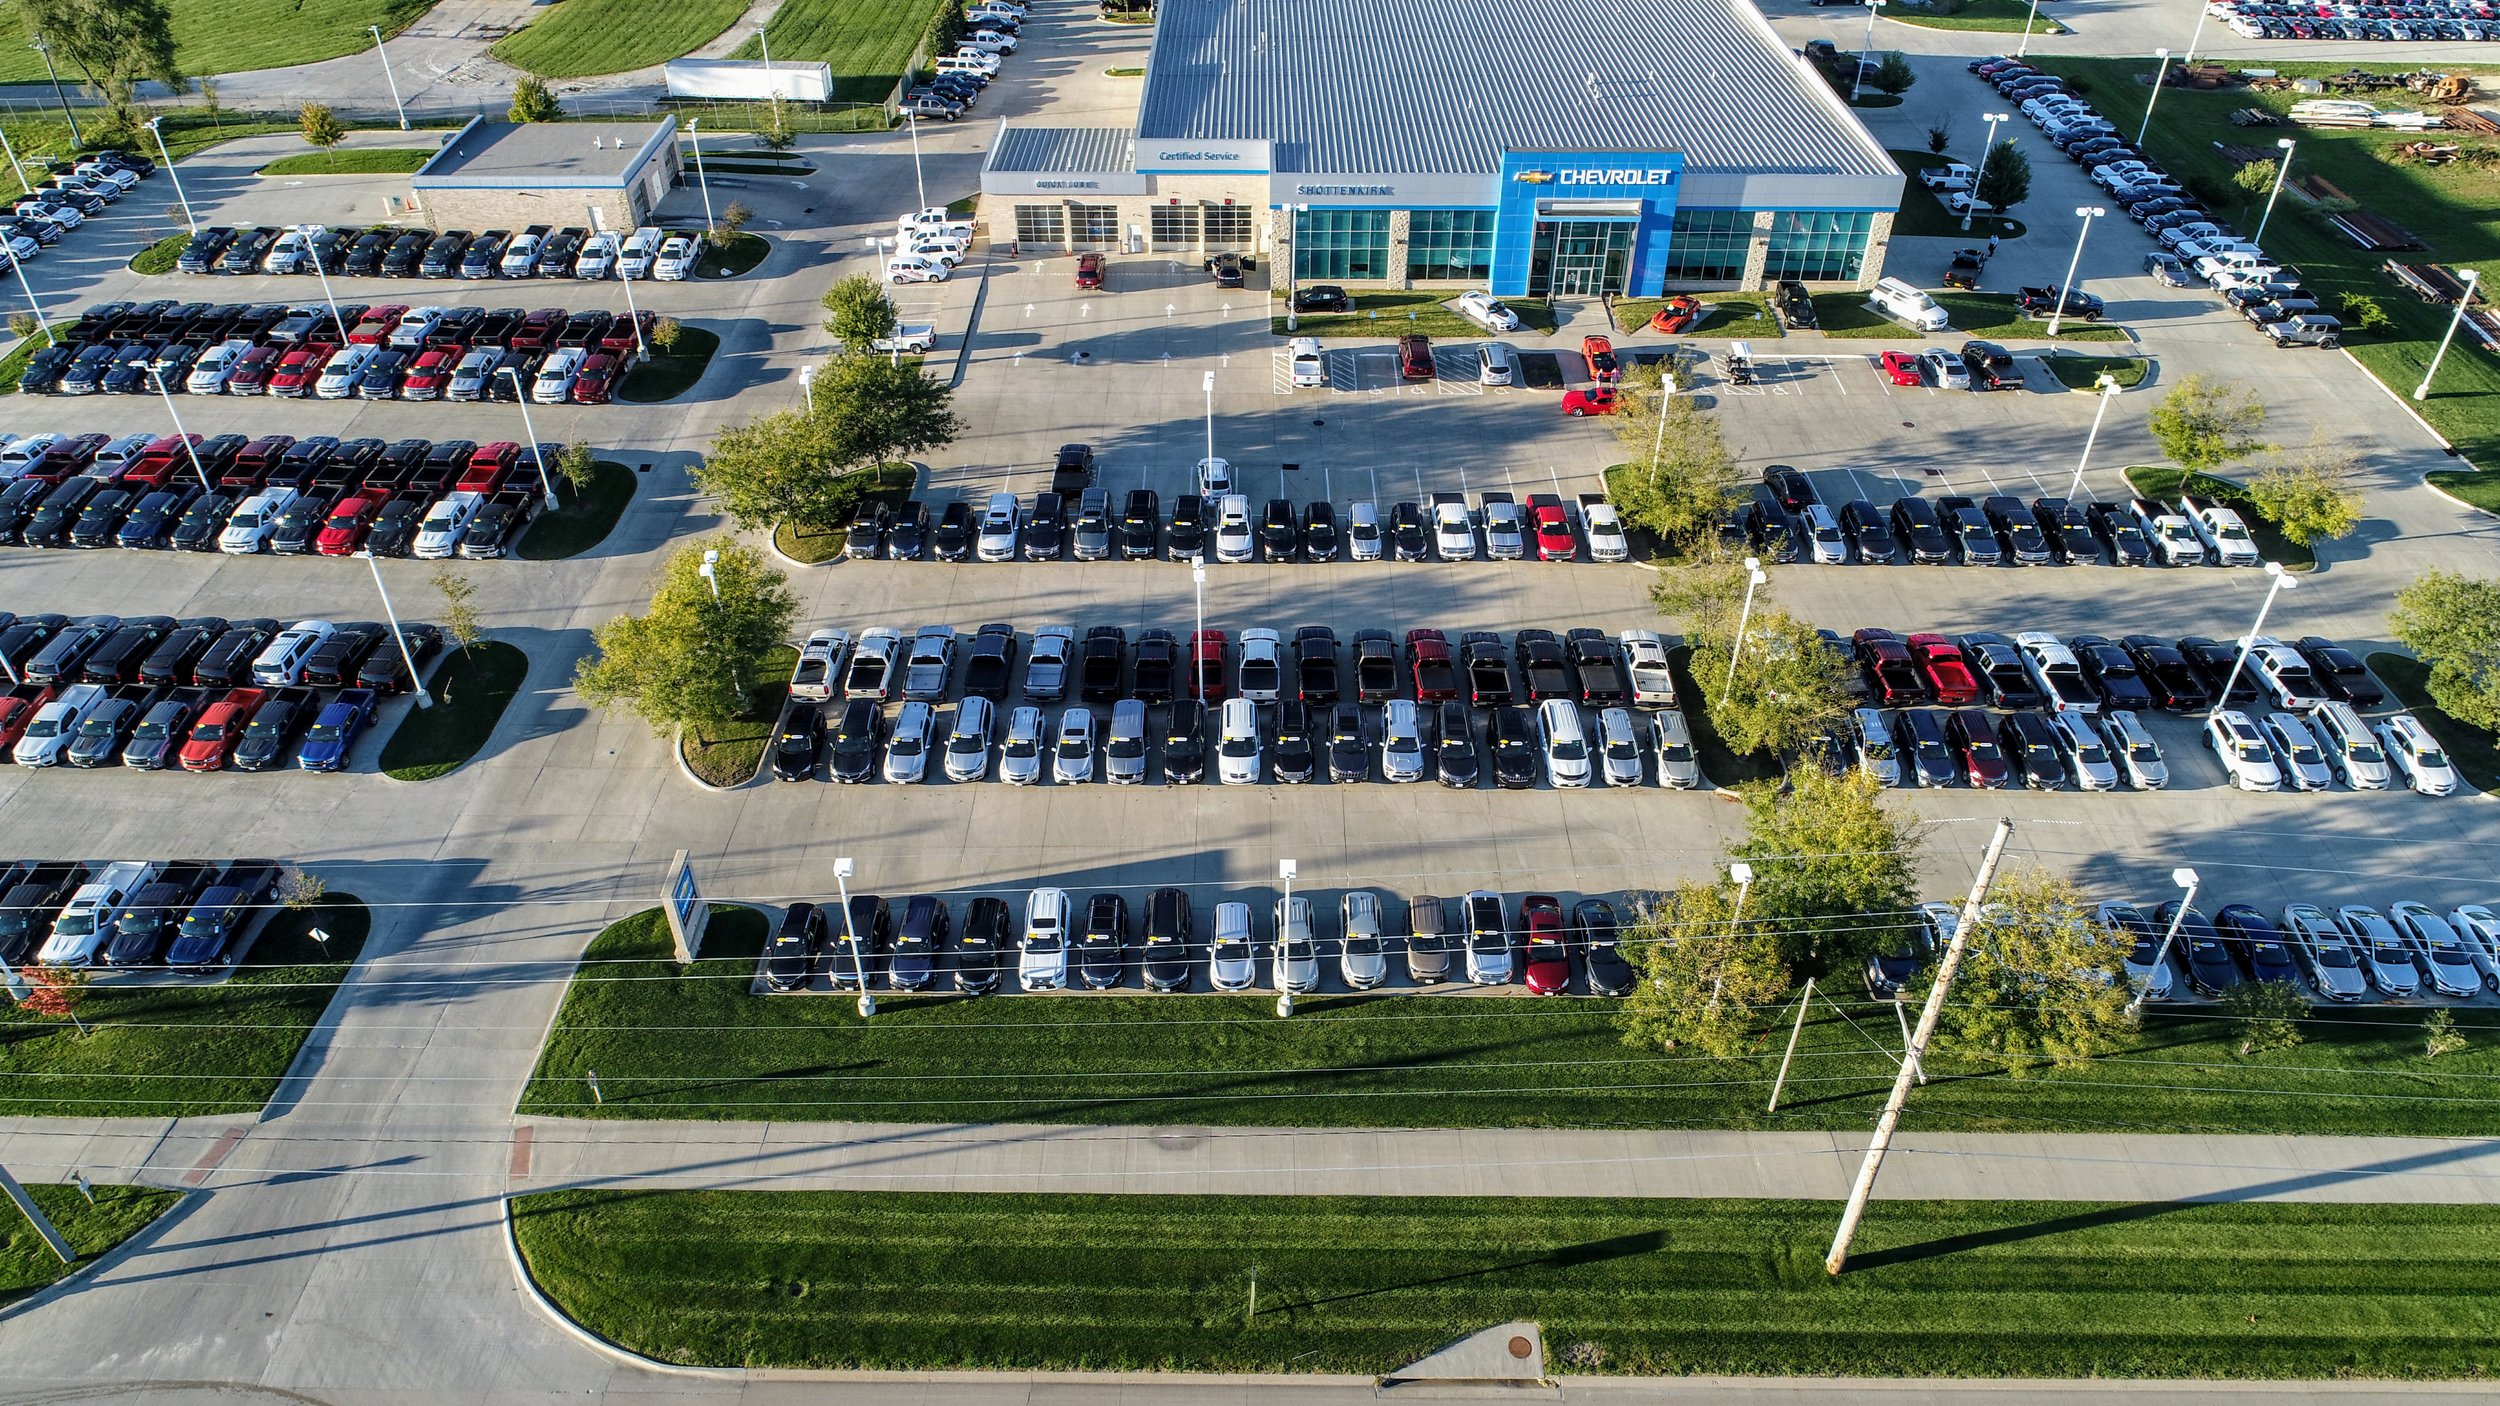 Shottenkirk Chevy In Waukee Iowa Dronography Iowa